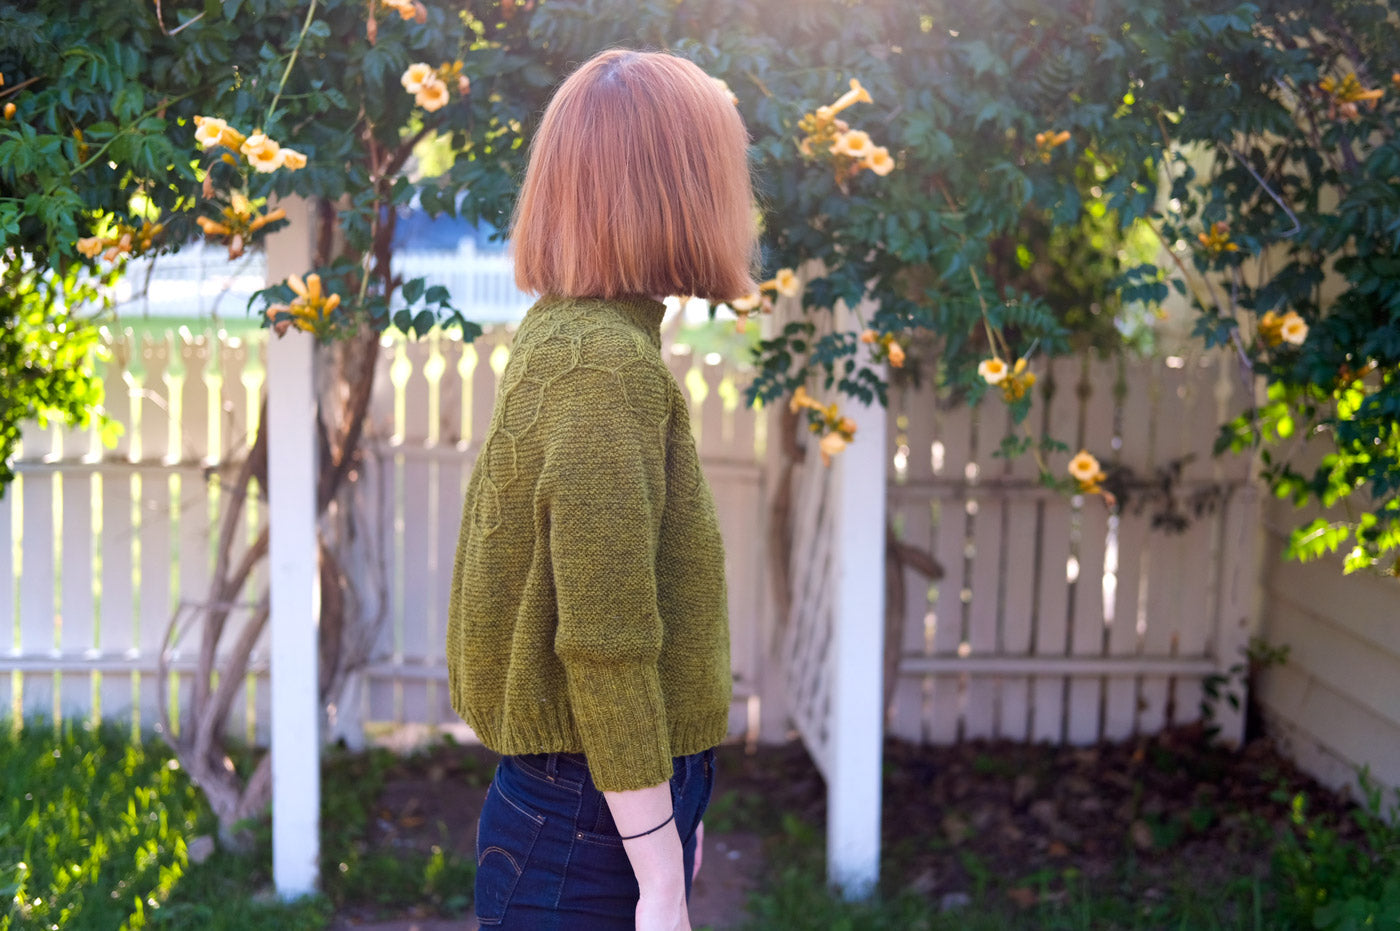 Lauren in her garden wearing her Wool and Honey Sweater